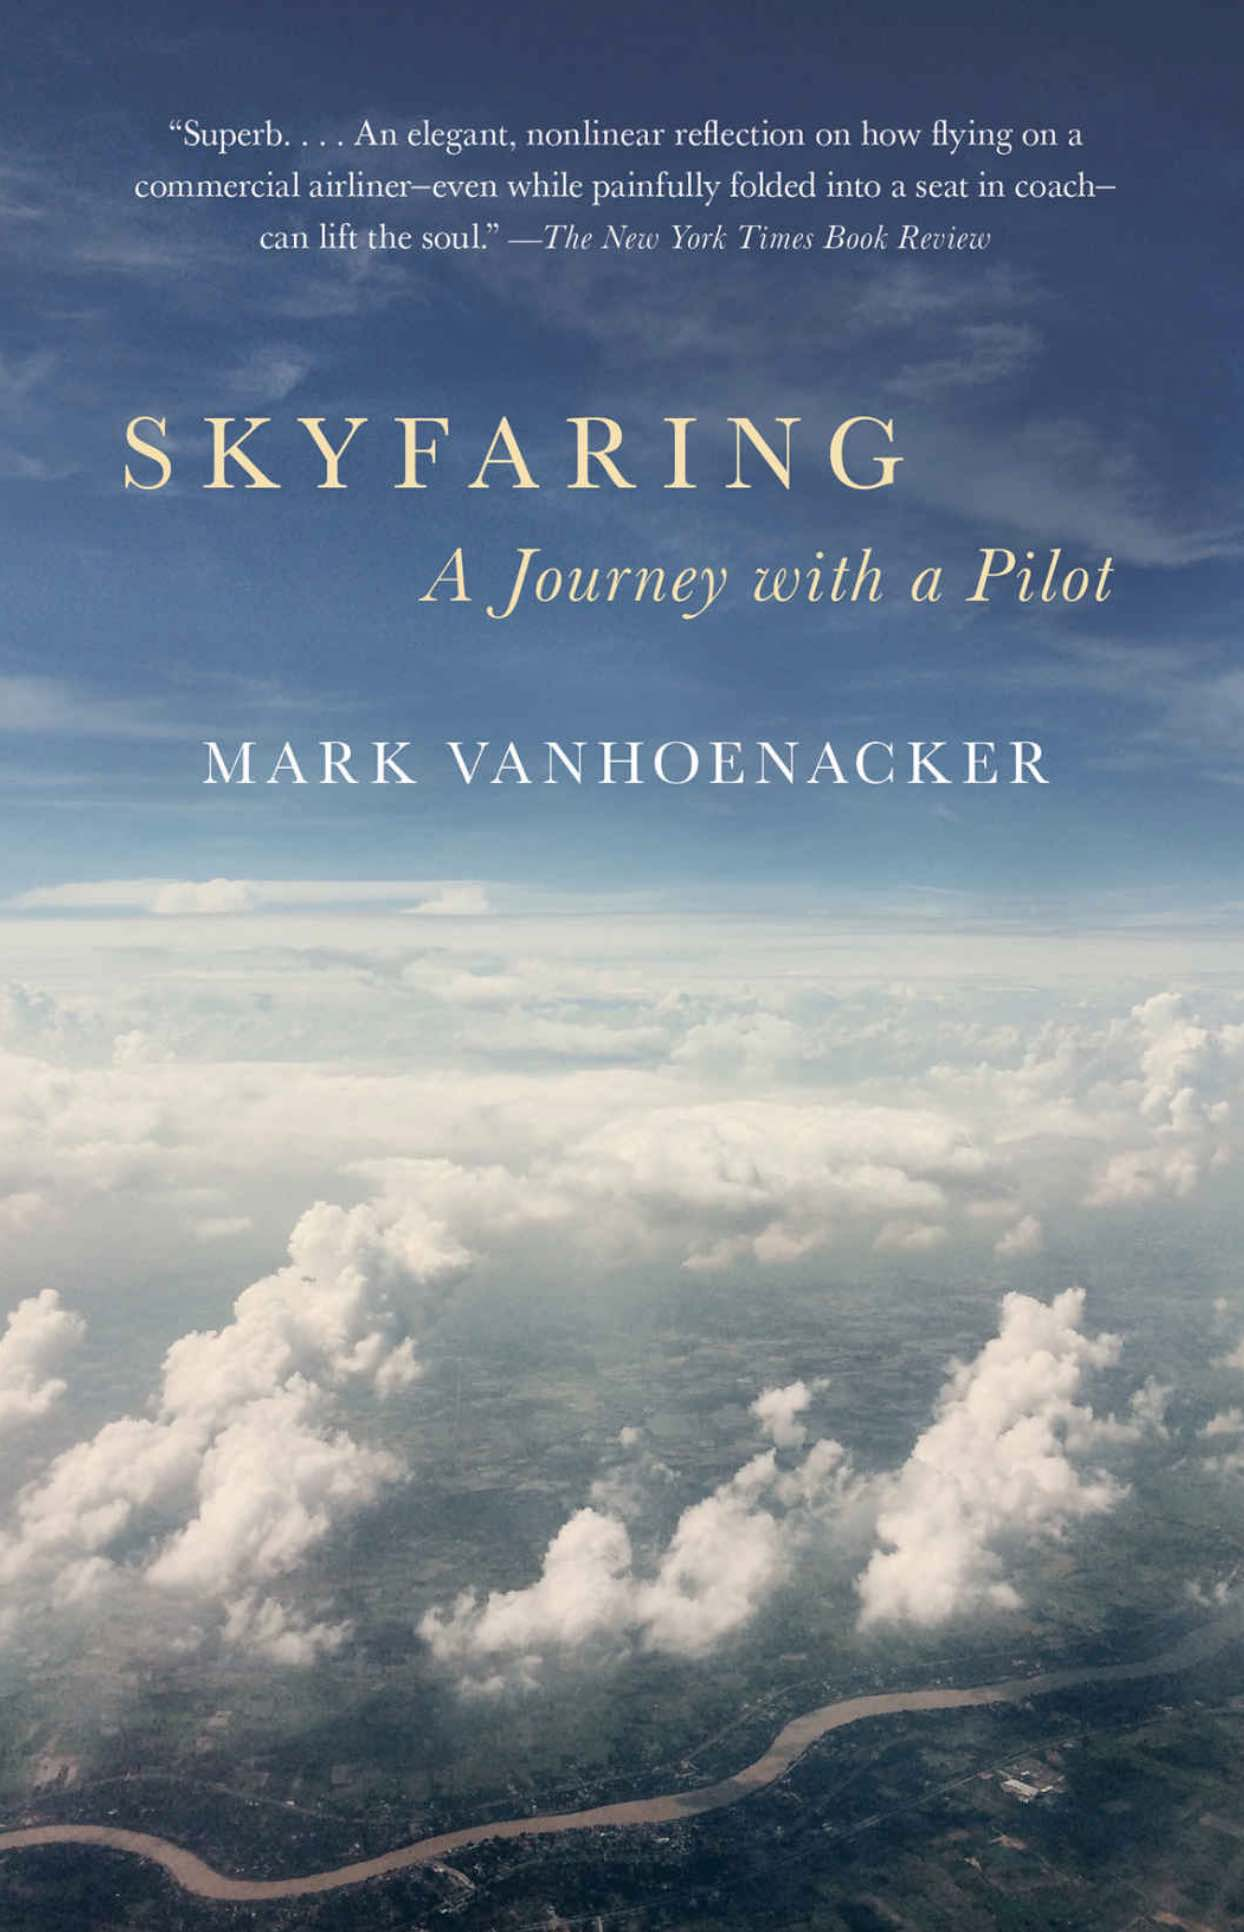 Cover of the book Skyfaring